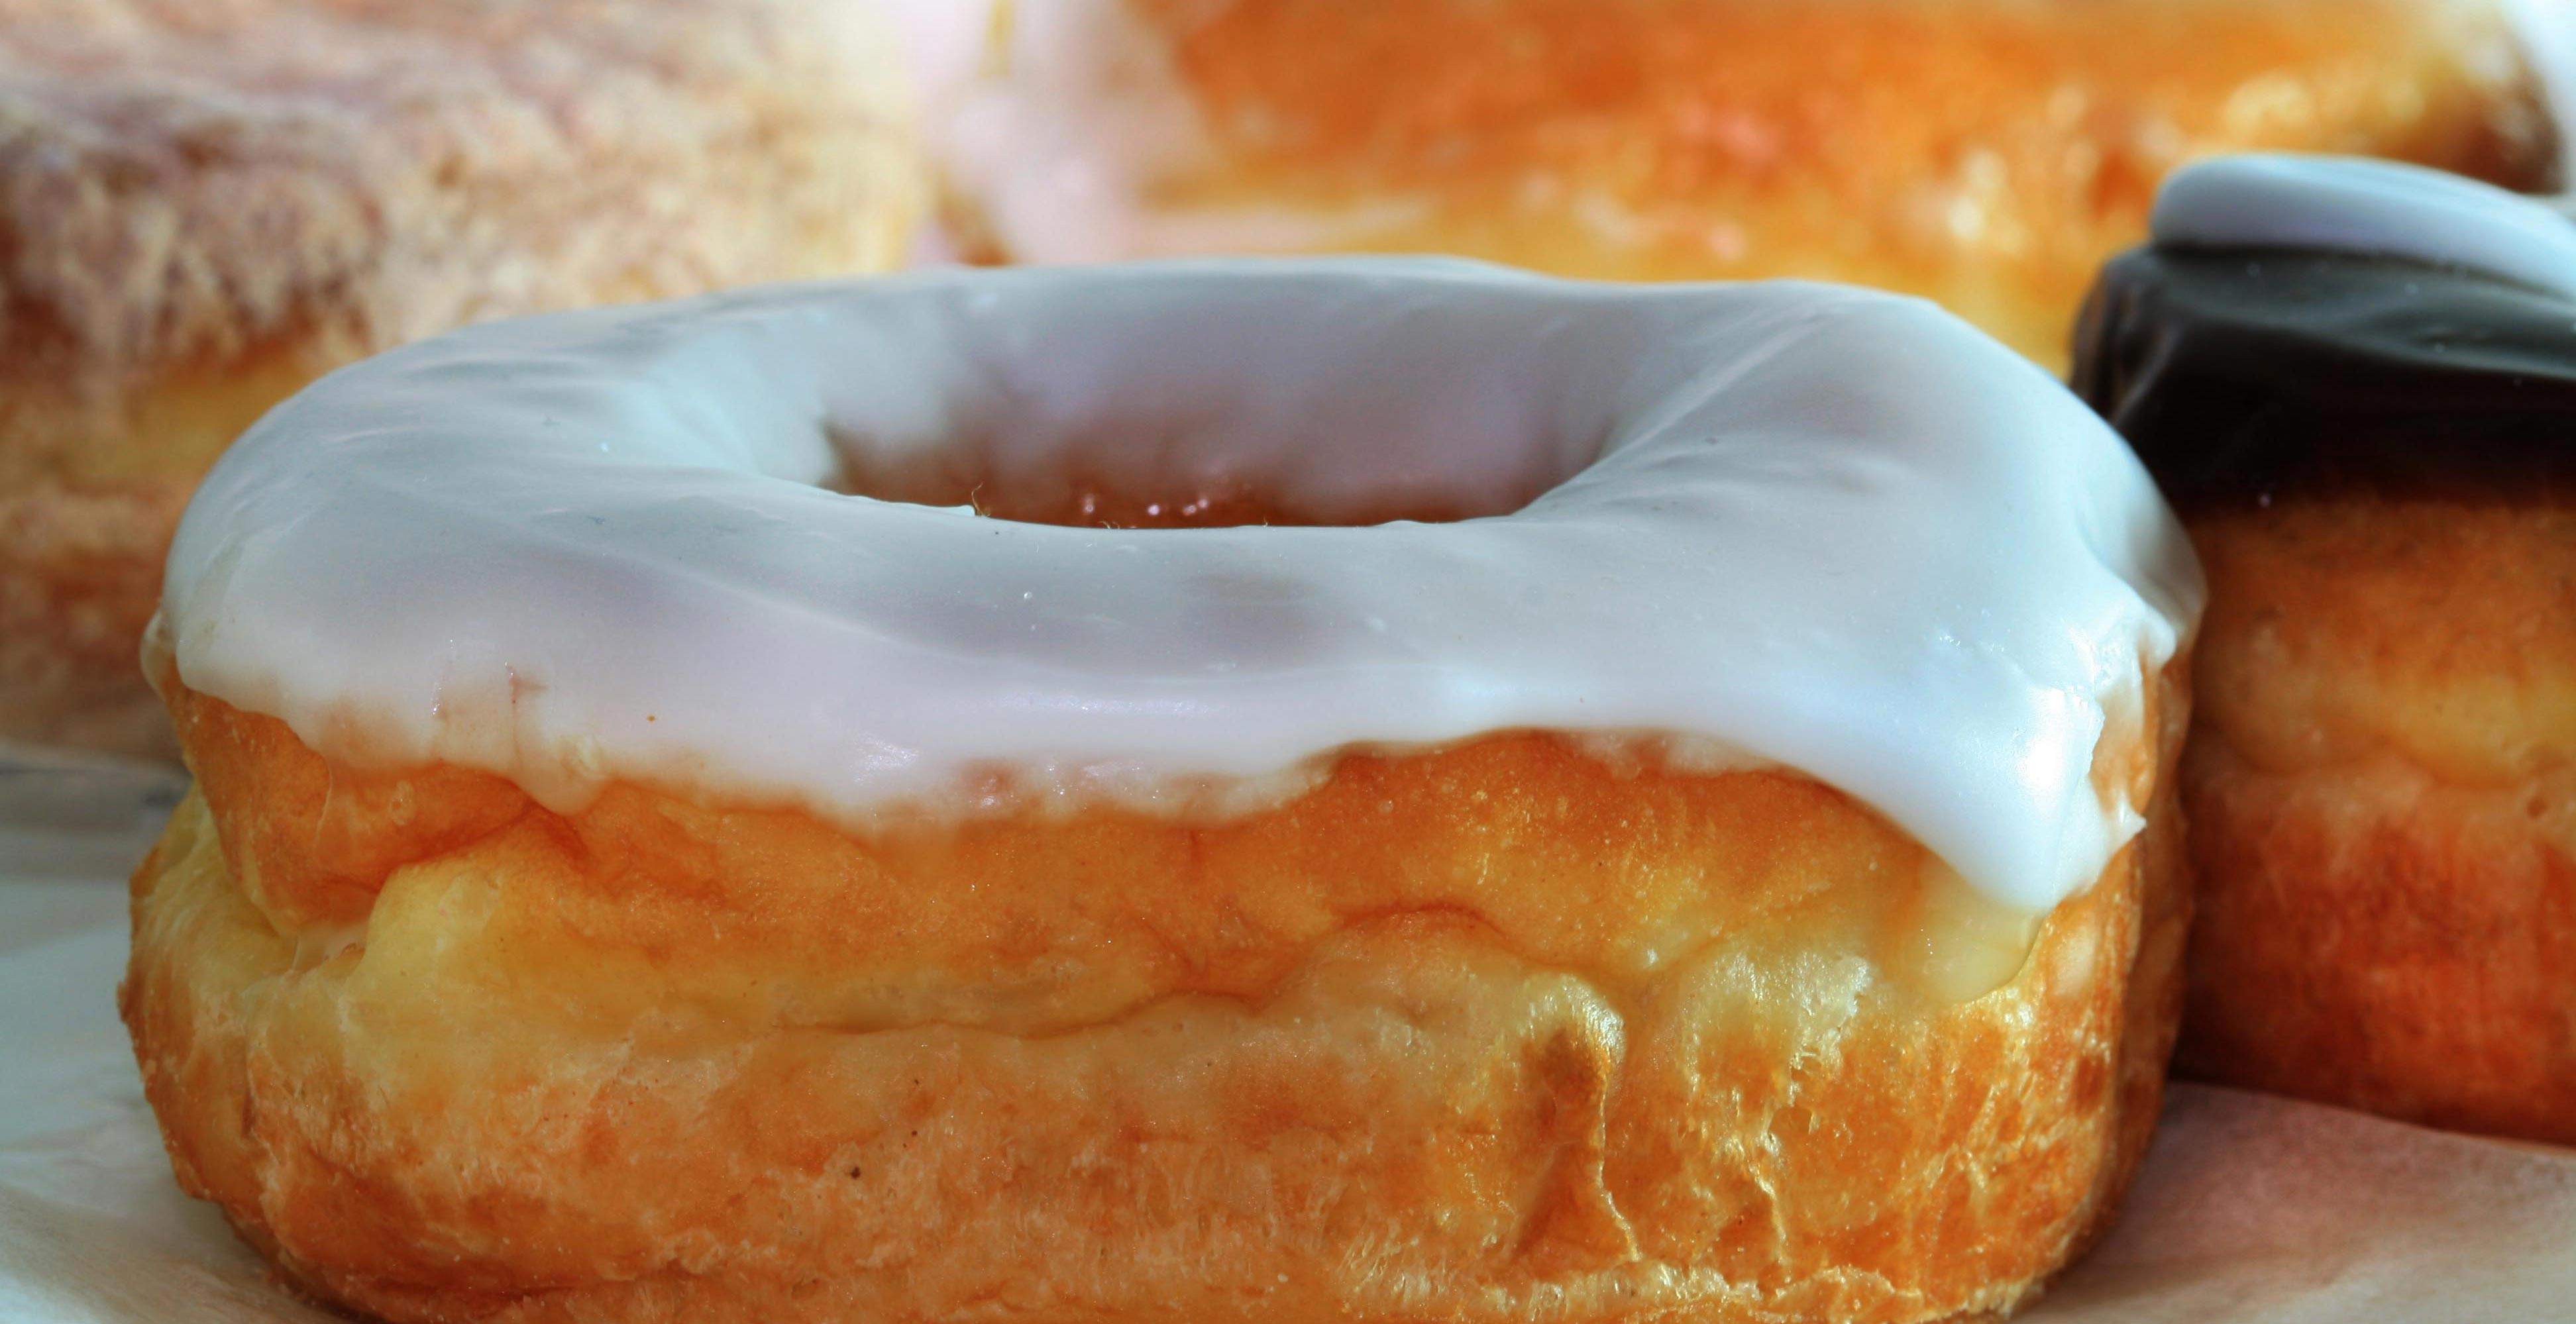 Scratch-made SVG Donut & Pie Charts in HTML5 - Mark Caron